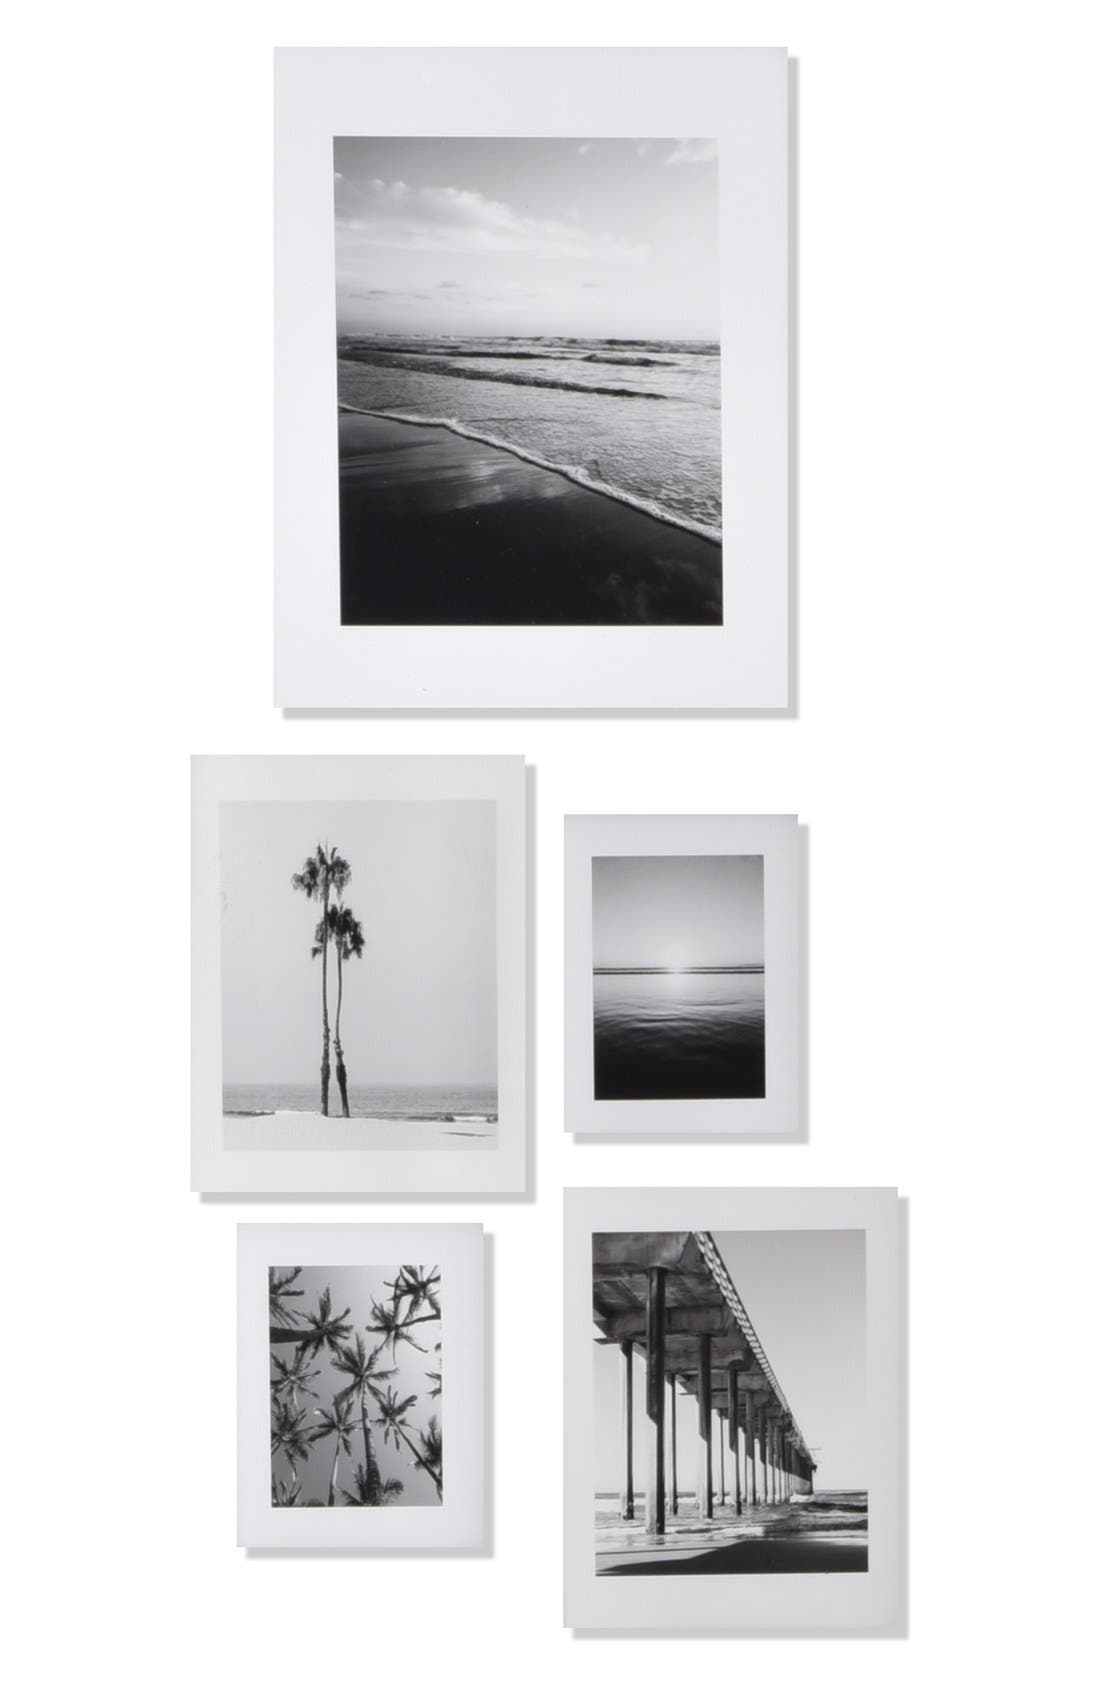 Alternate Image 1 Selected - DENY Designs 'Ombré Beach' Wall Art Gallery (Set of 5)